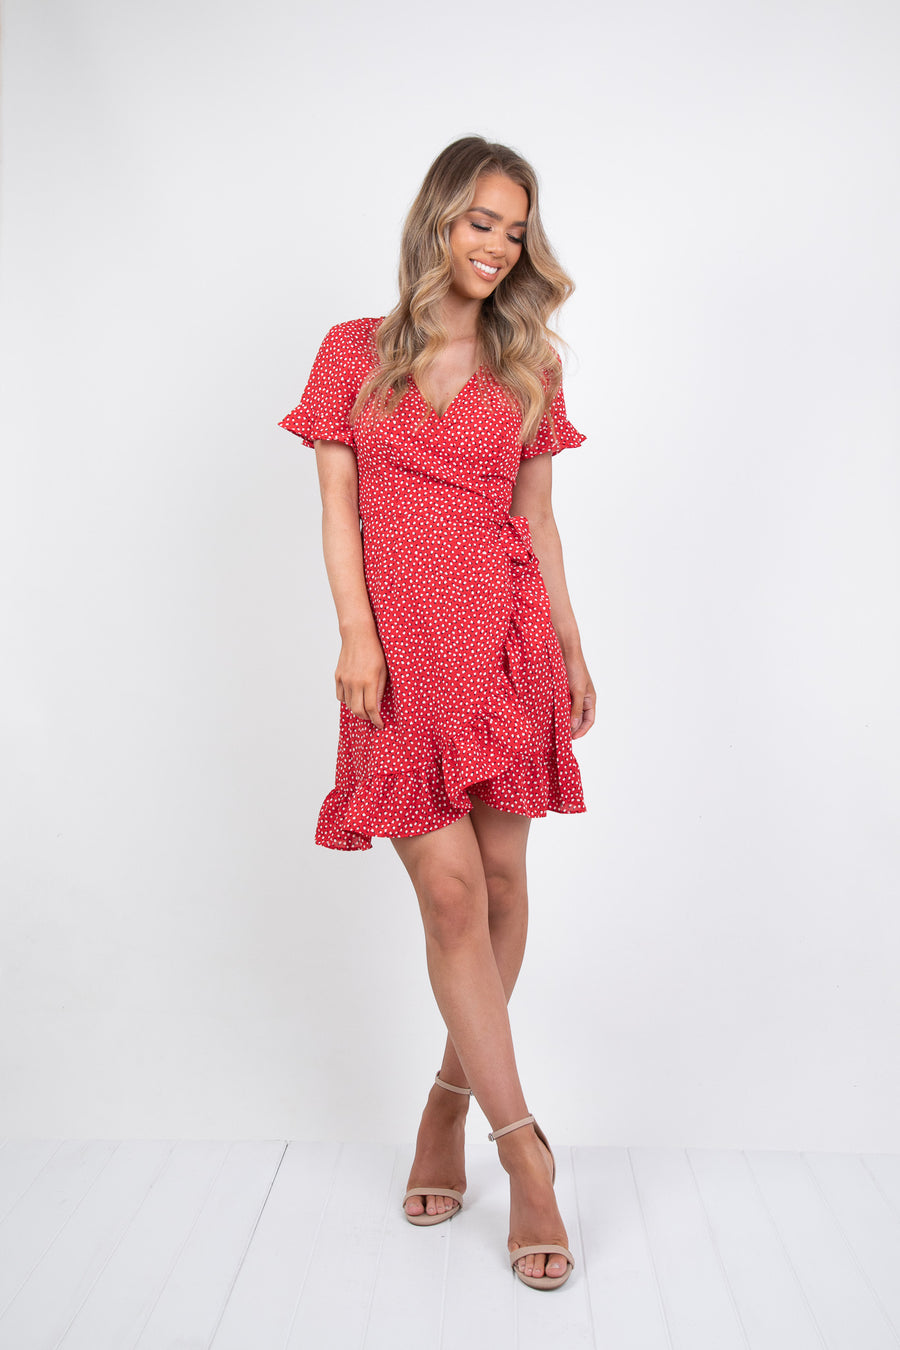 KYM DRESS  - RED